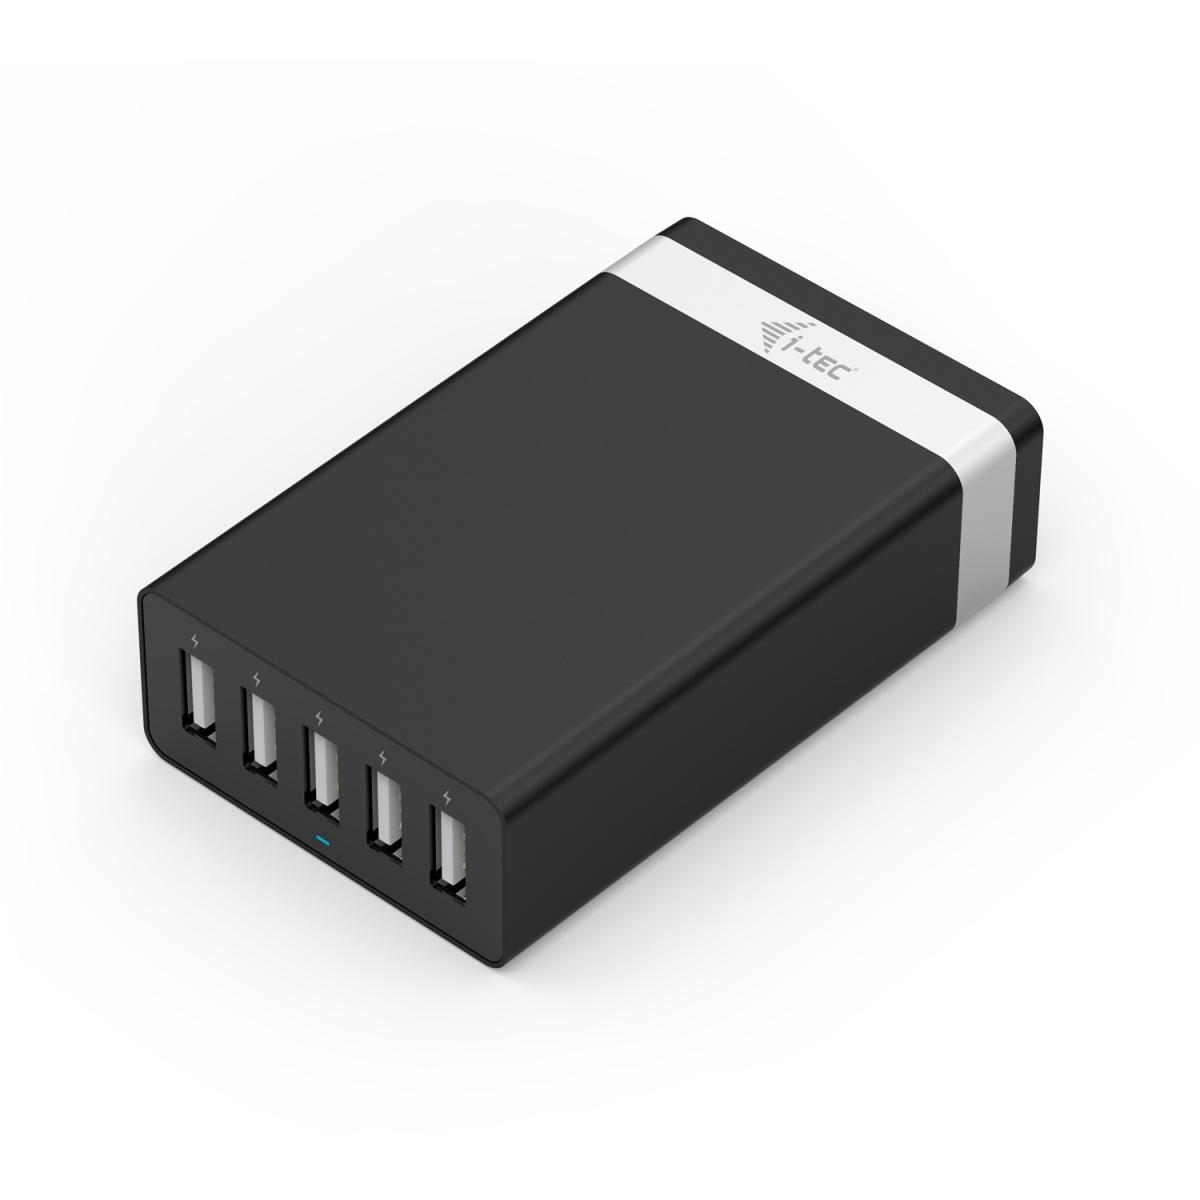 i-tec SMART USB 5 PORT CHARGER 40W / 8A CHARGER5P40W